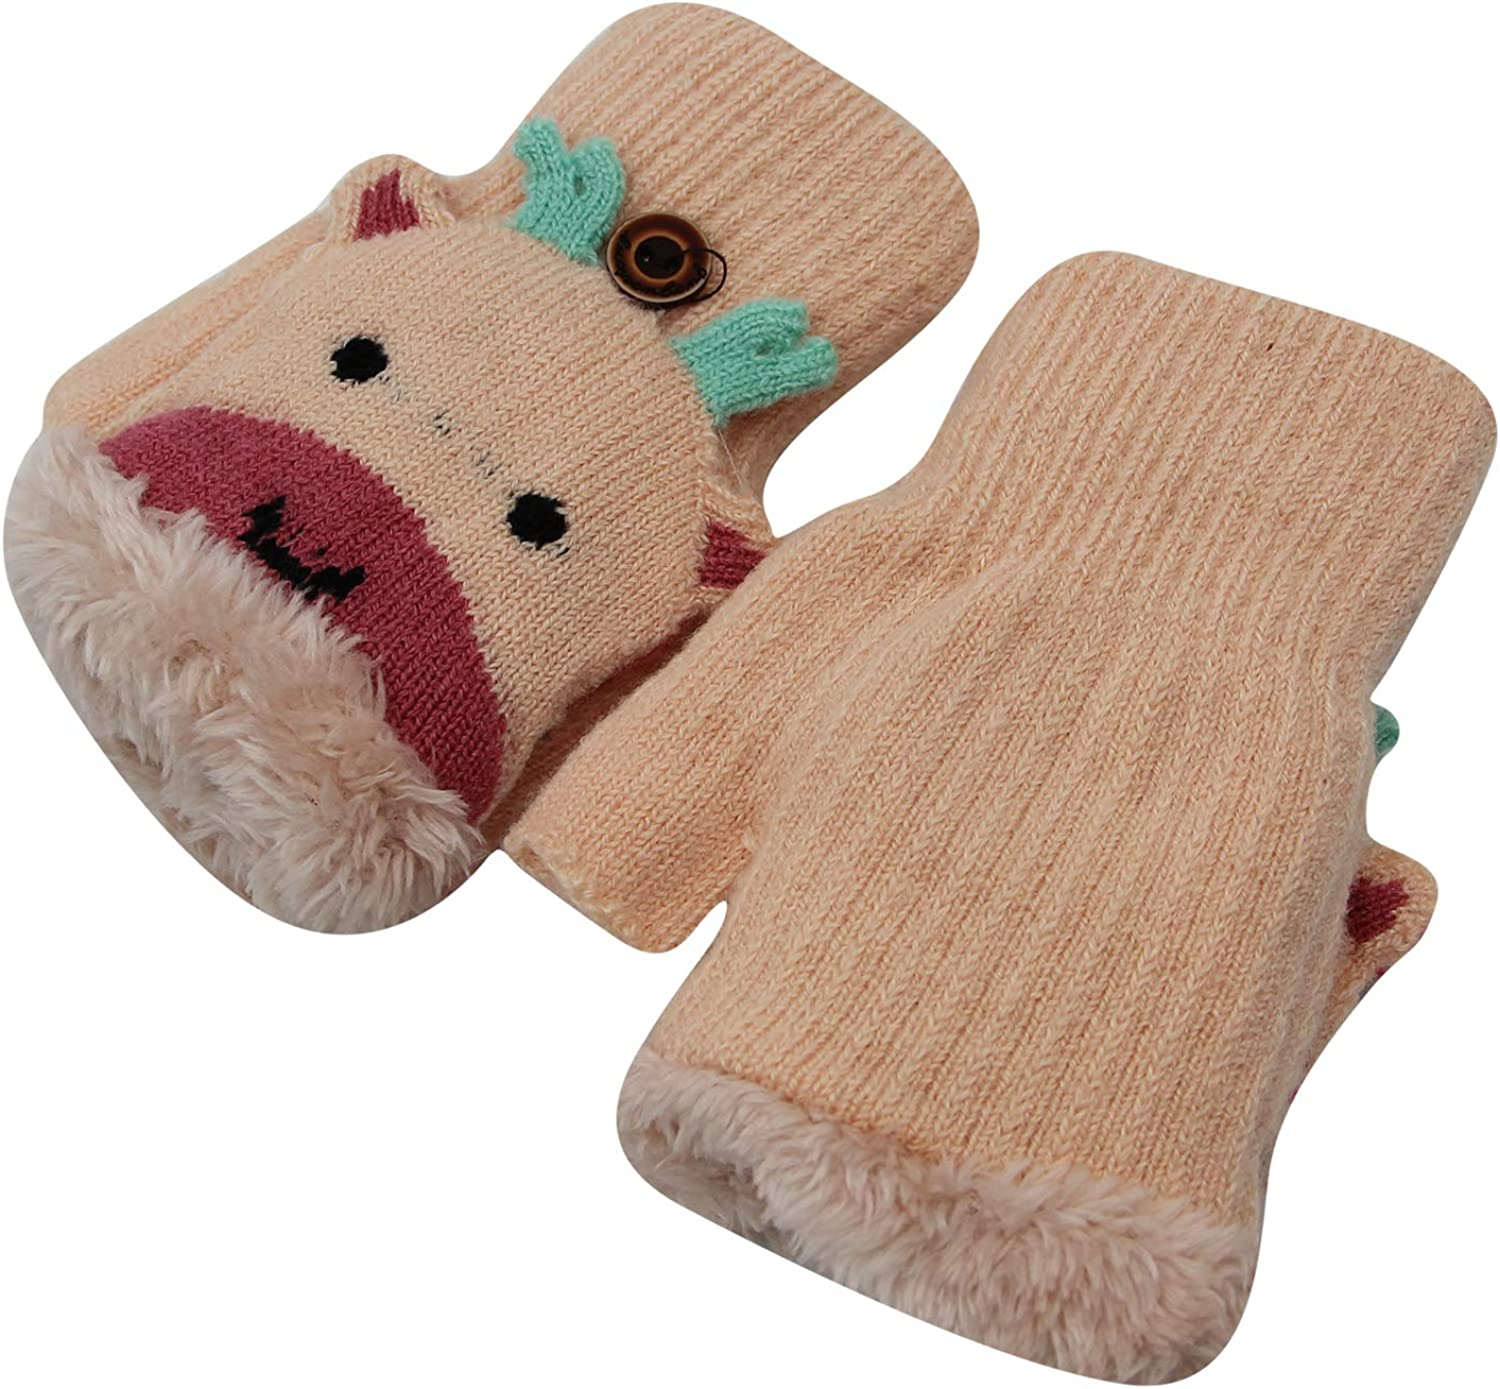 Toddlers Winter Thermal Gloves with Convertible Flip Top Mittens Cover Kids Cute Owl Fingerless Gloves for Girls Boys